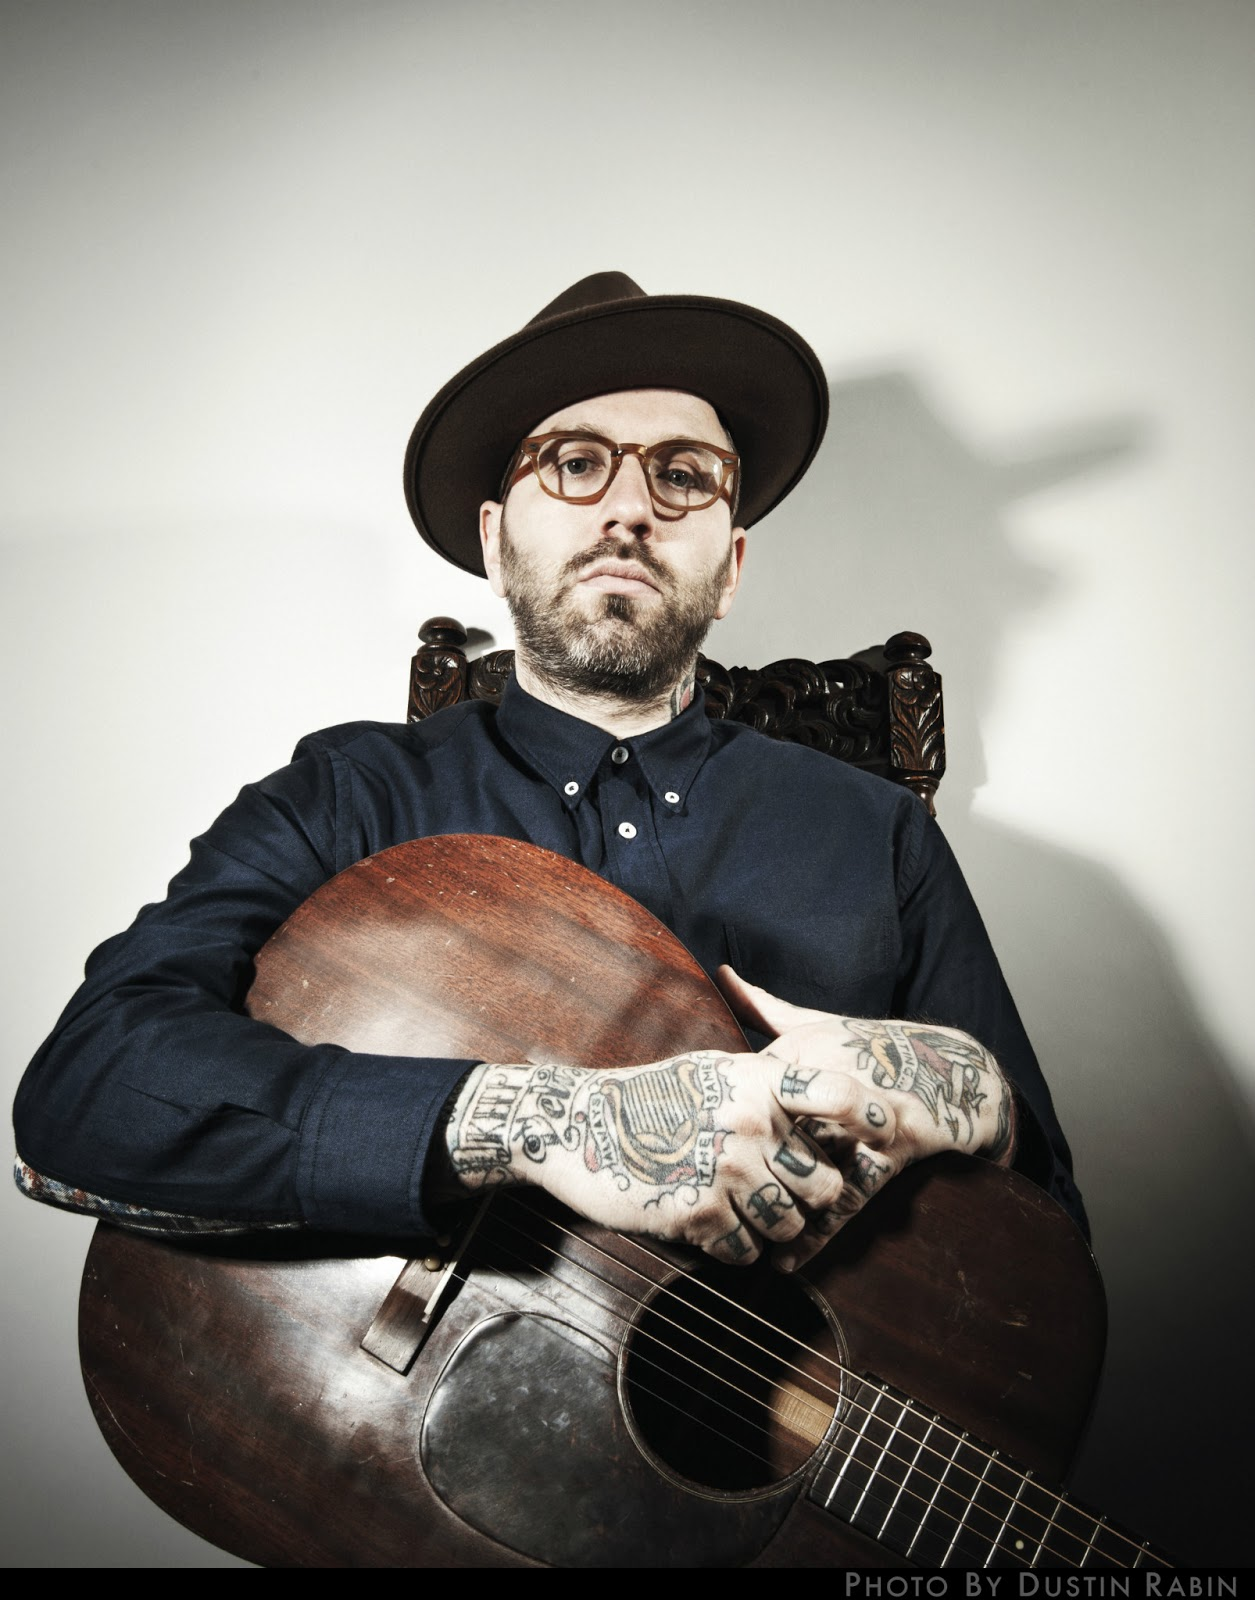 Dallas Green aka City and Colour New Album